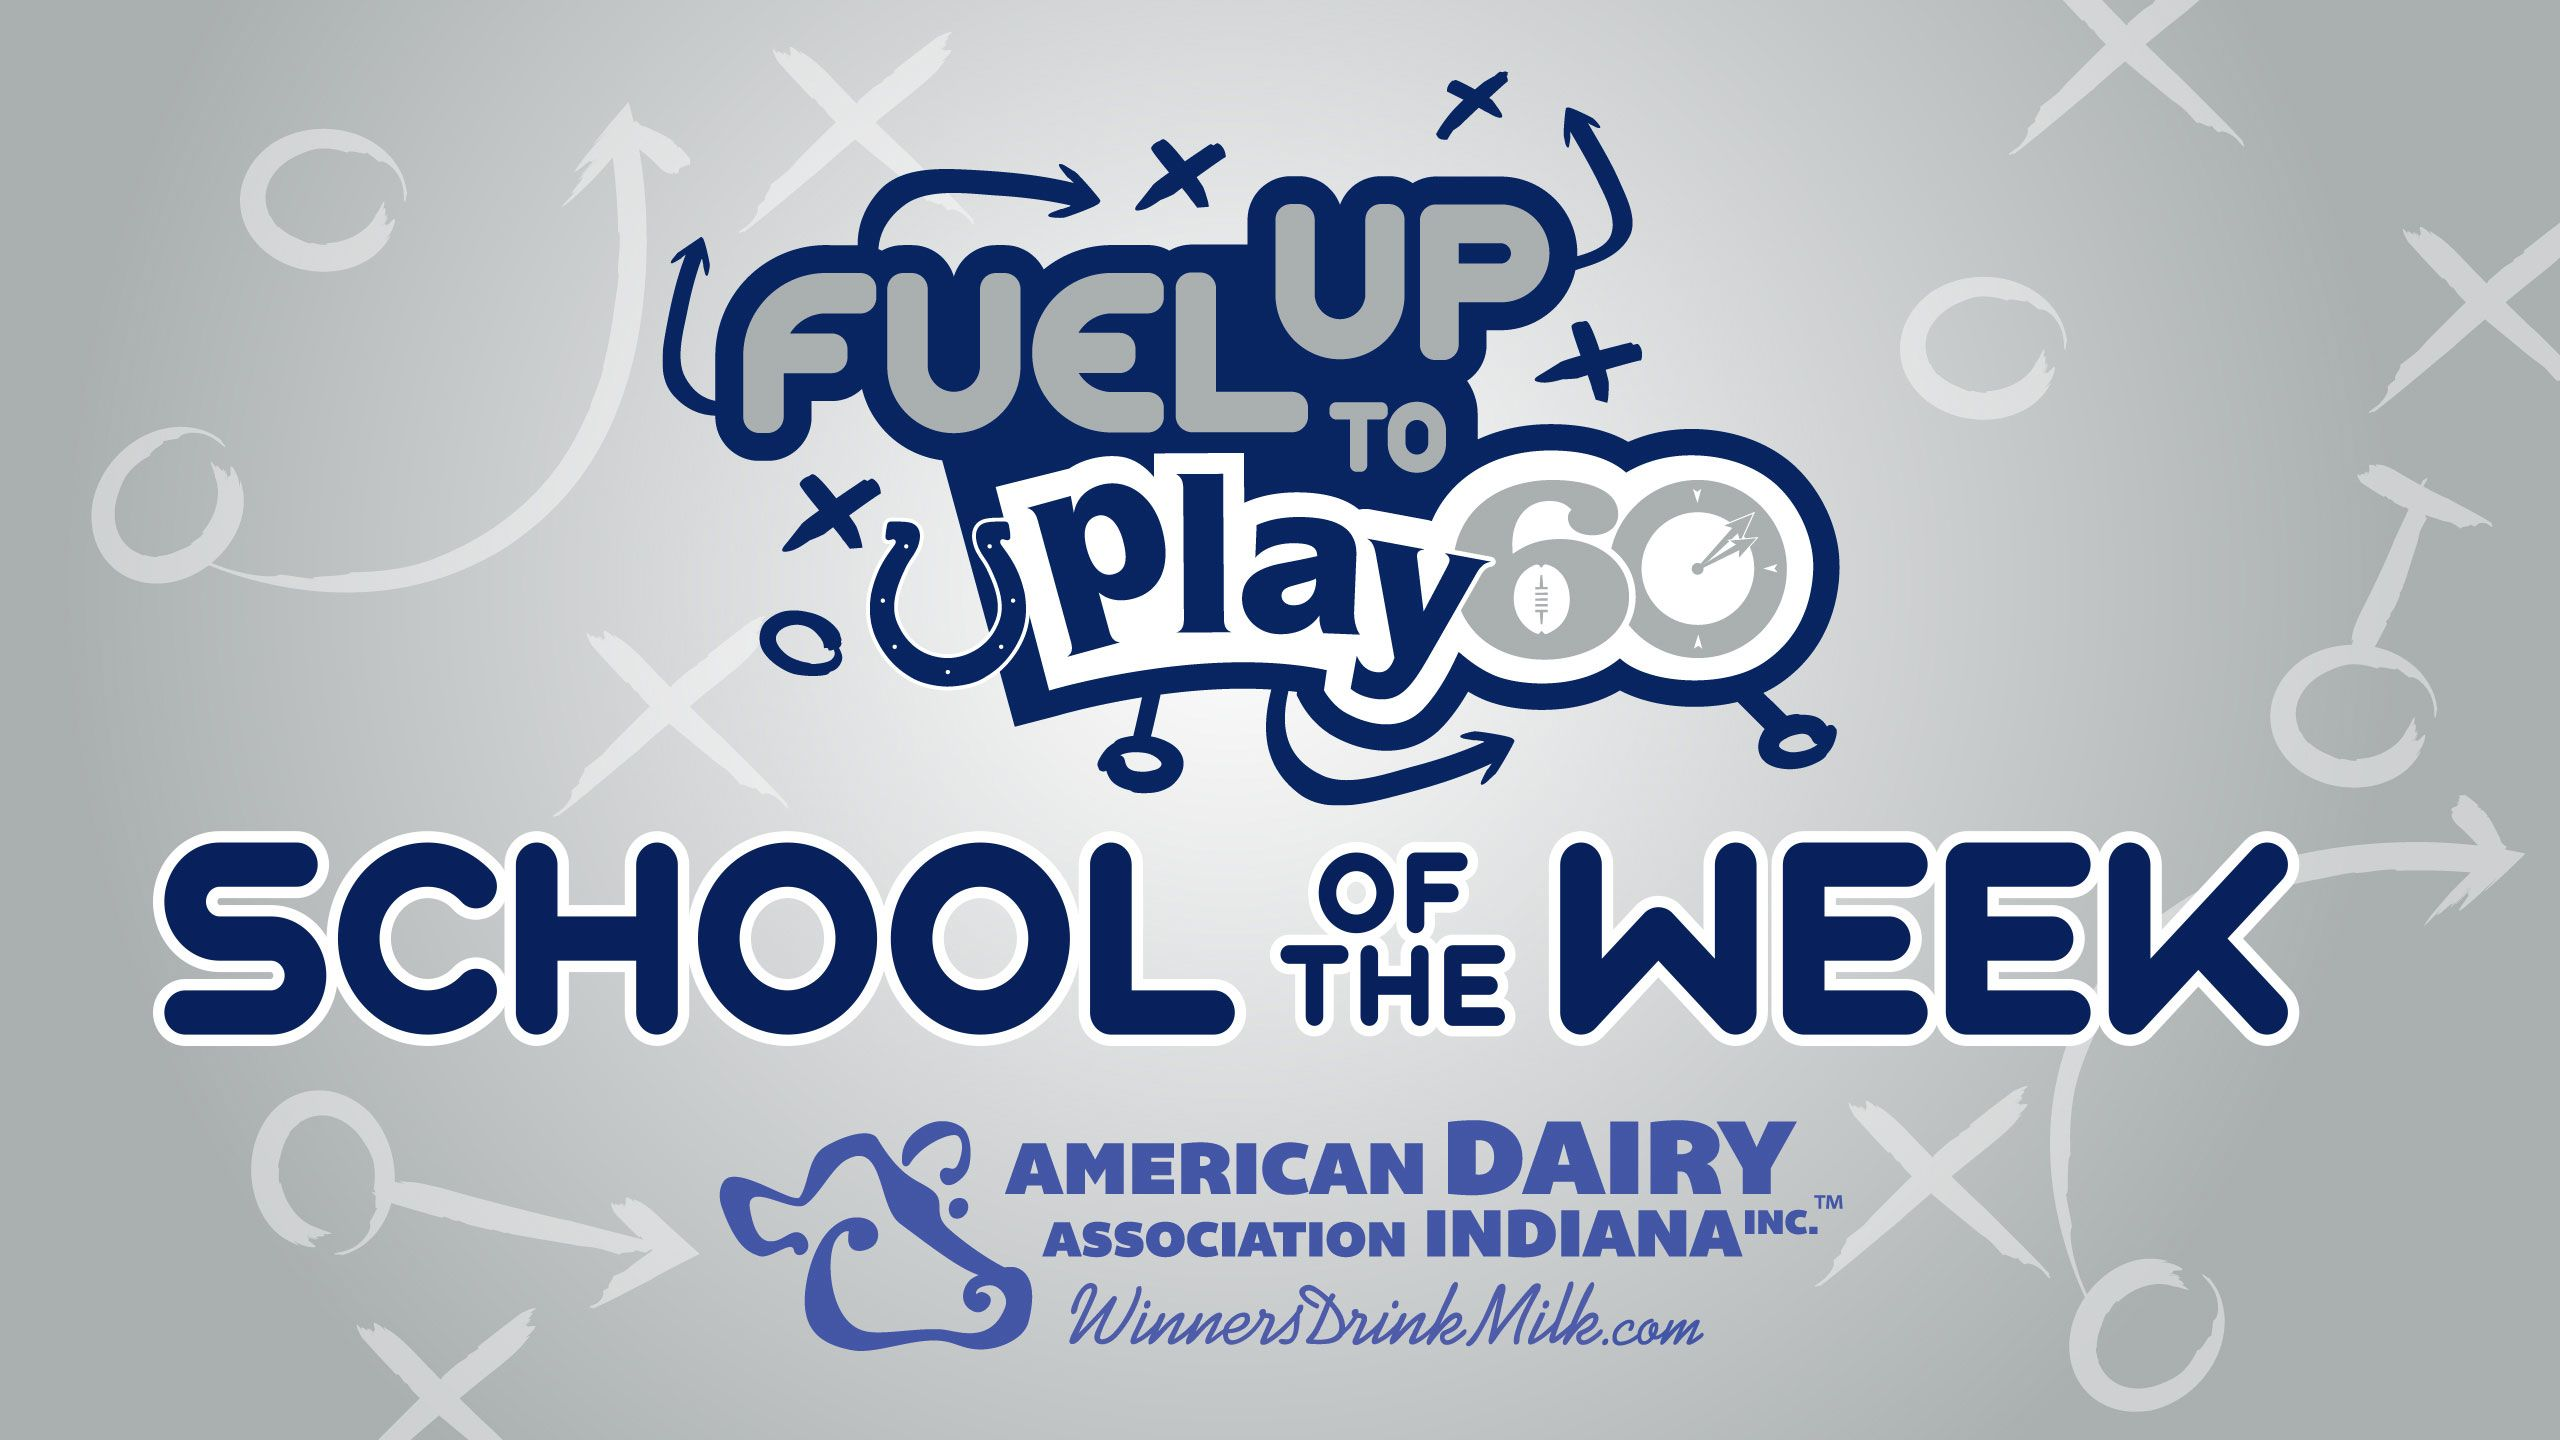 Fuel Up to Play 60 School of the Week